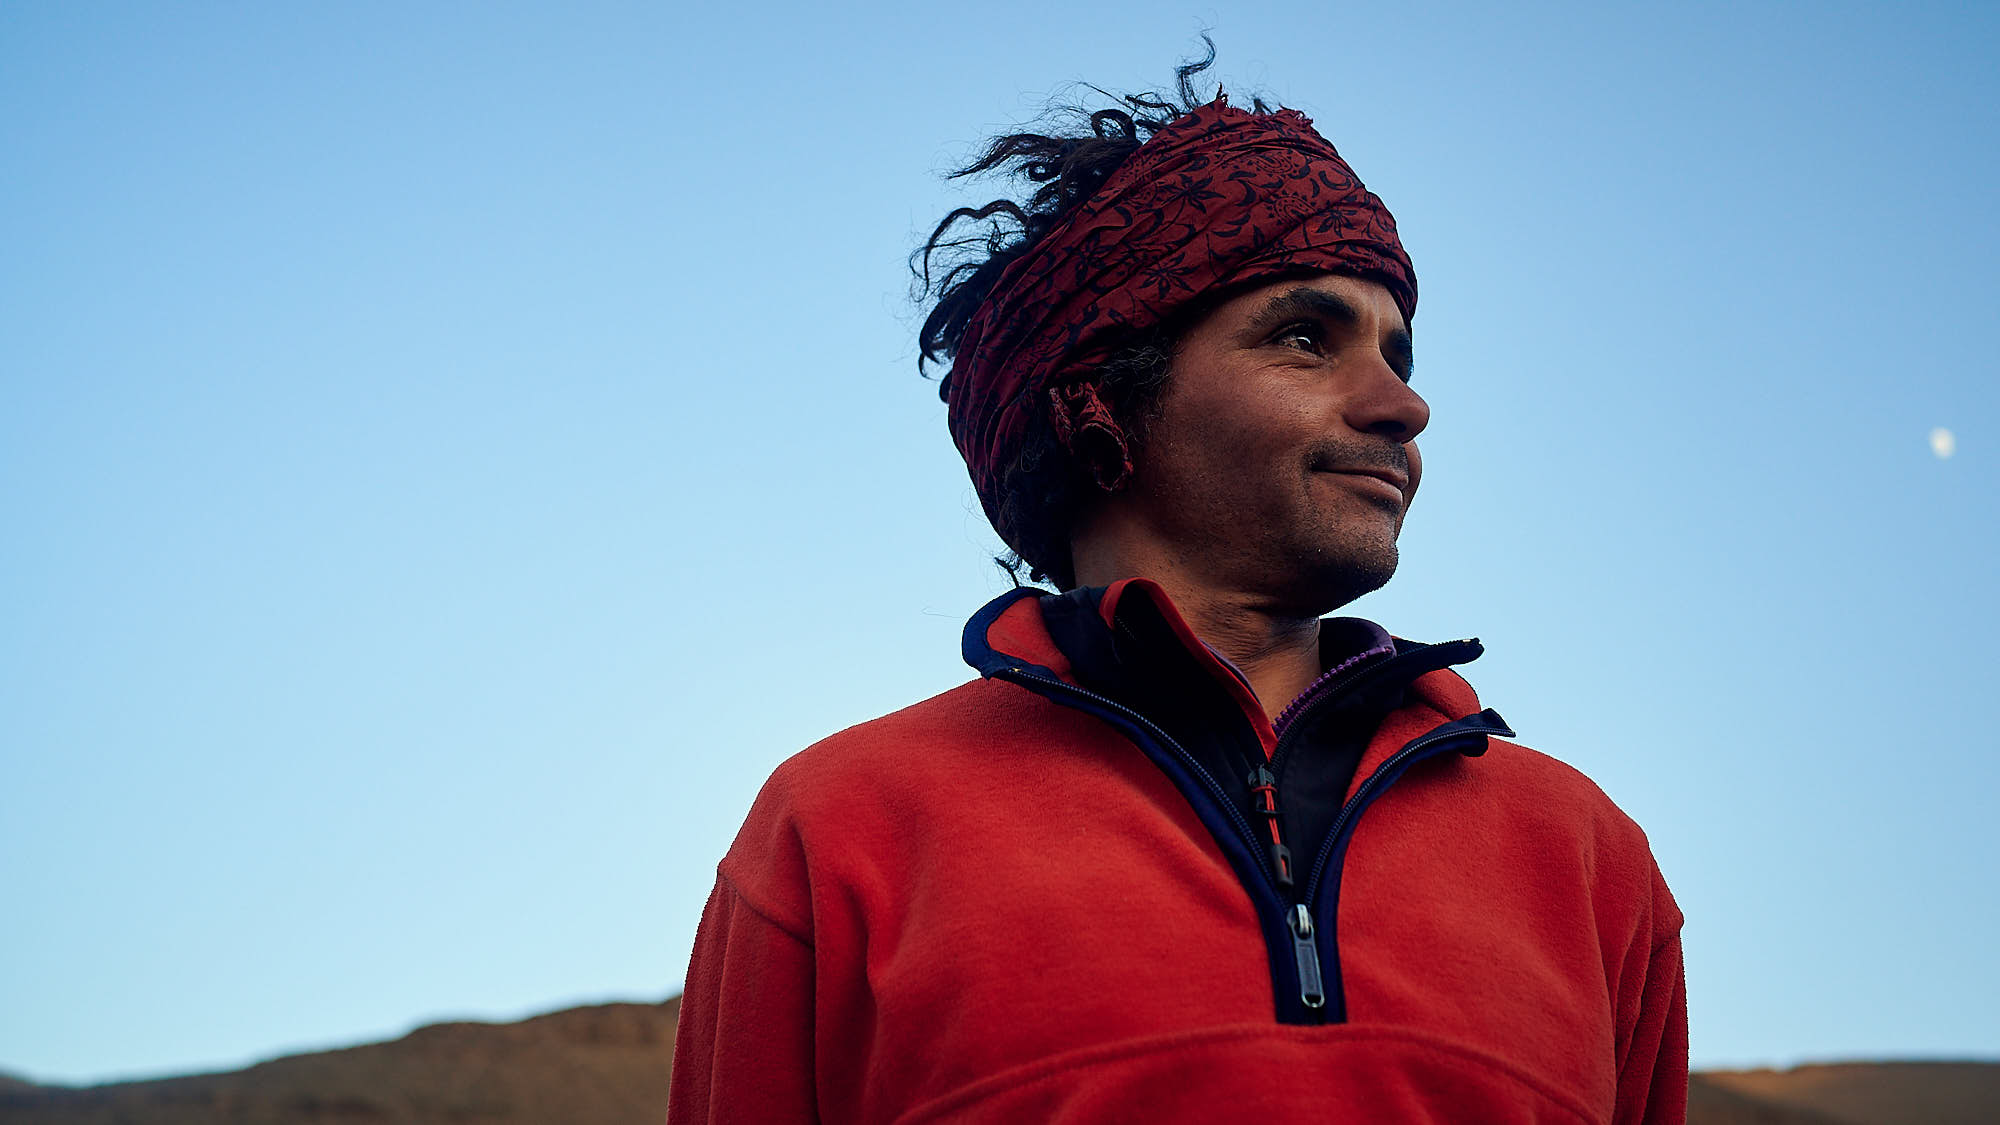 Portrait of a Moroccan mountain guide in the High Atlas